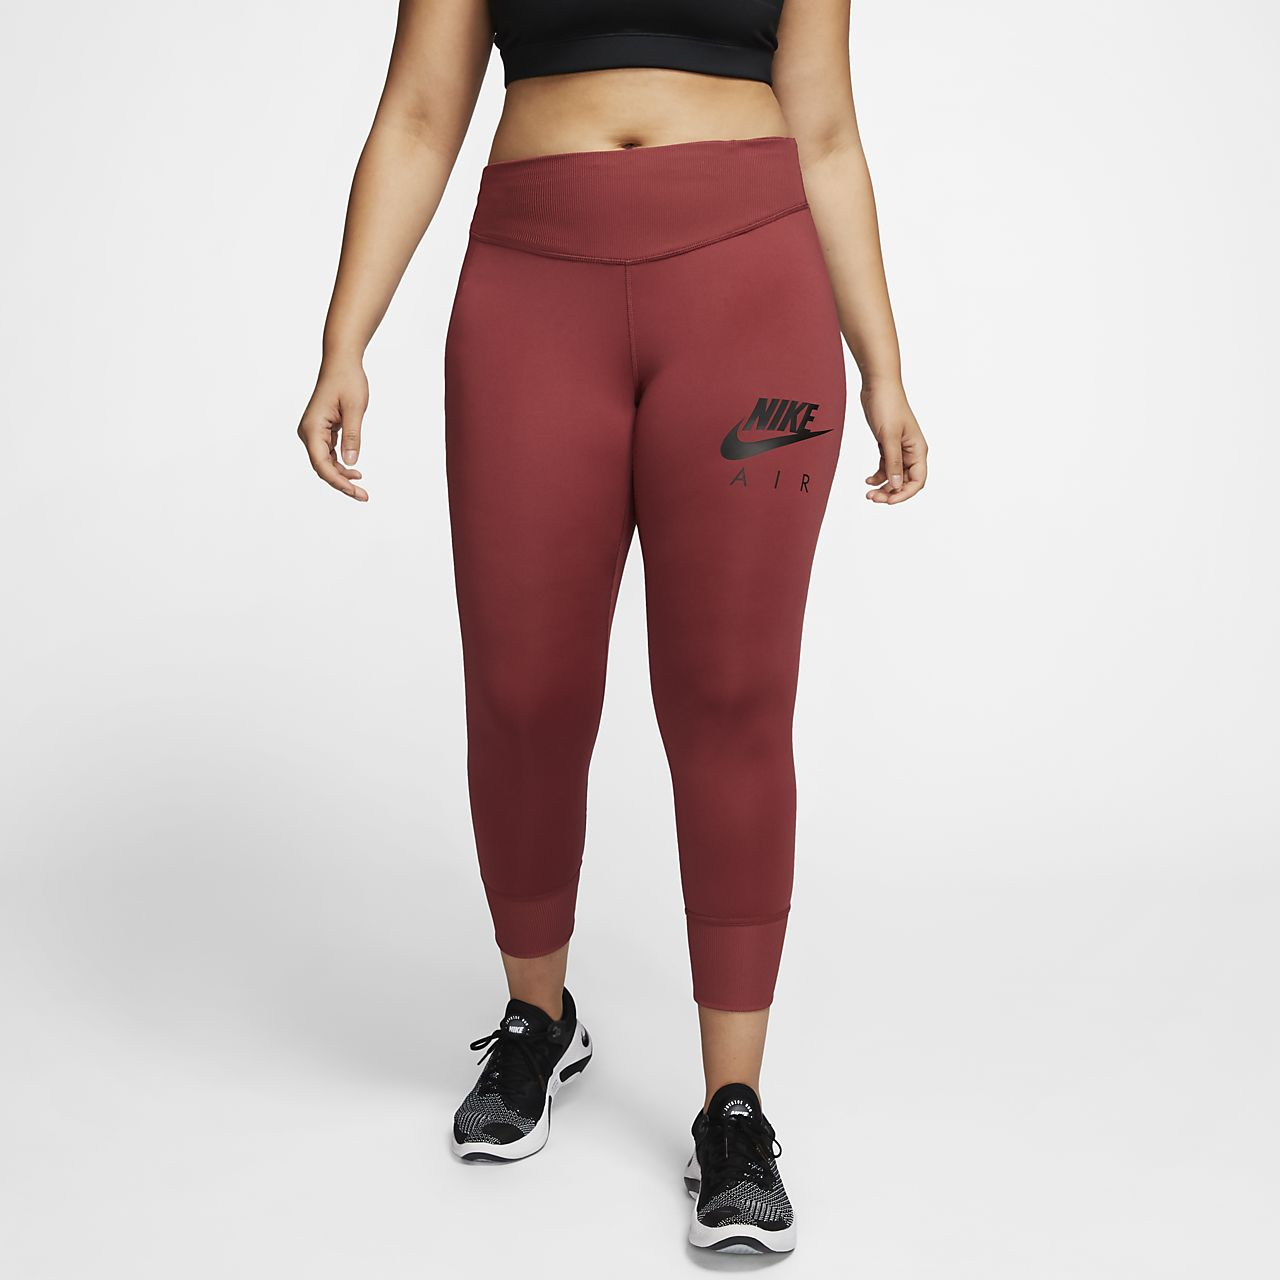 Nike Fast Women's 7/8 Running Leggings (Plus Size)